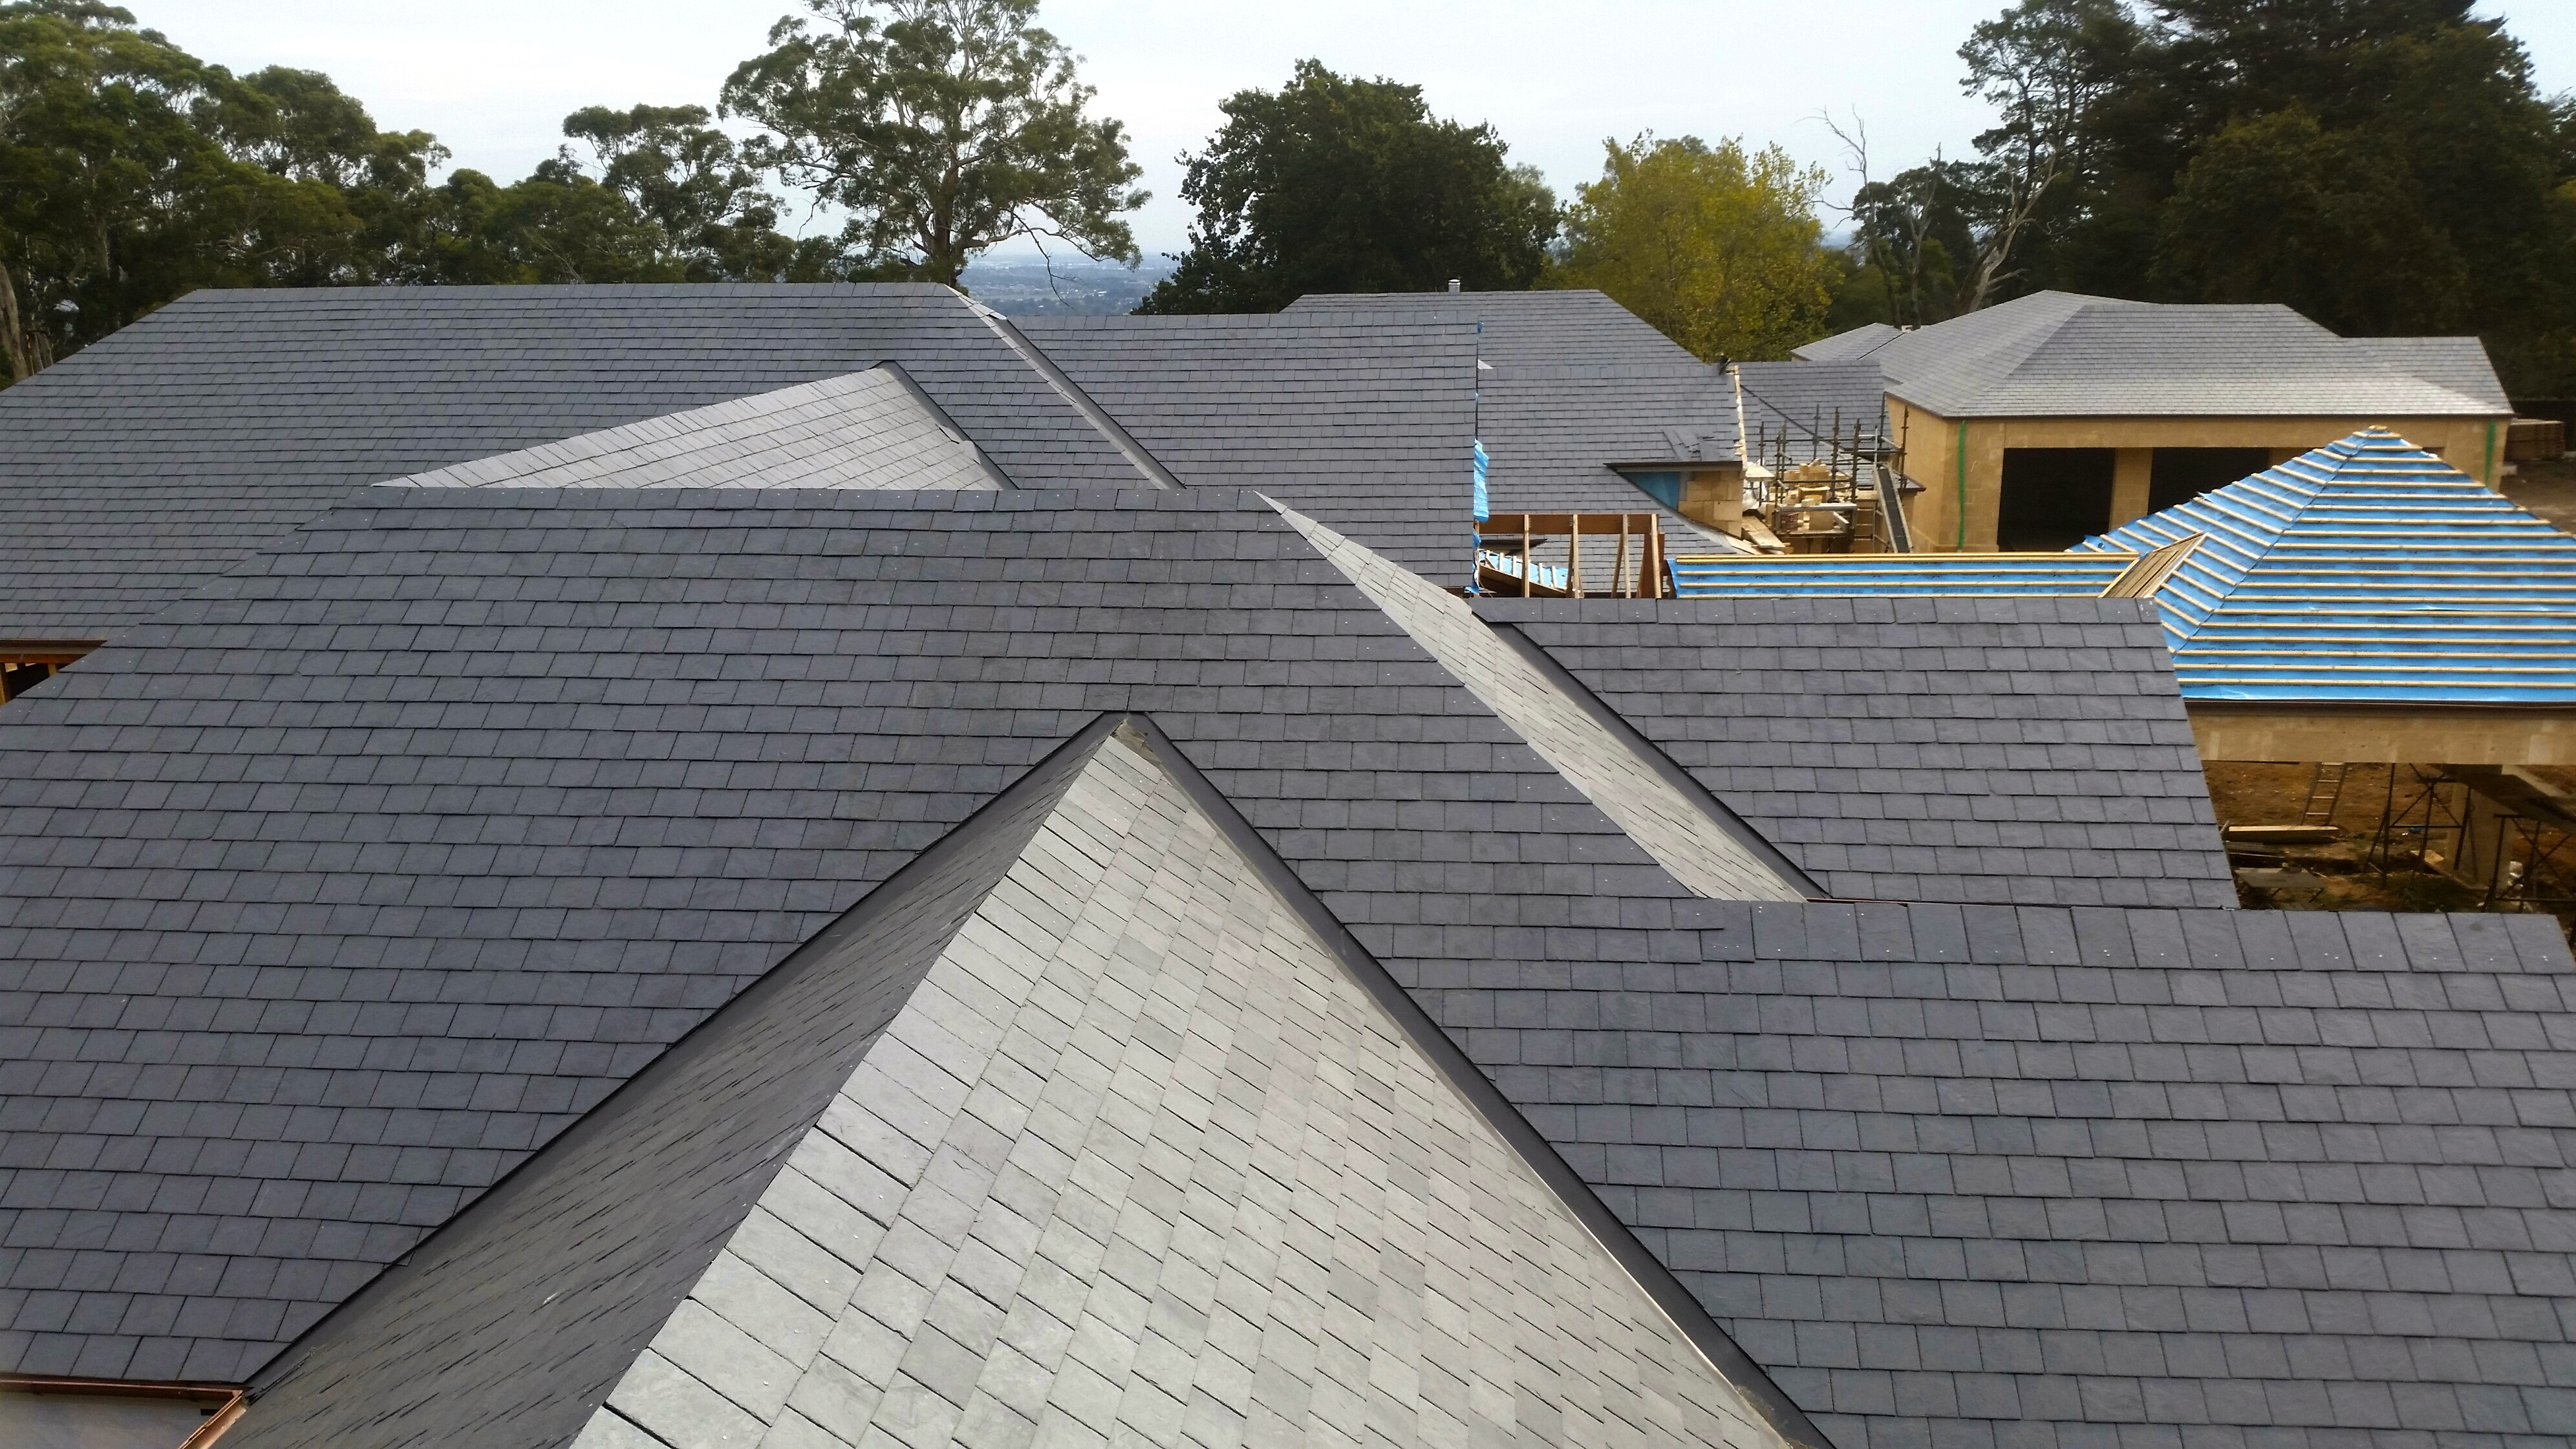 Slate Roofing Melbourne Domestic slate roofing